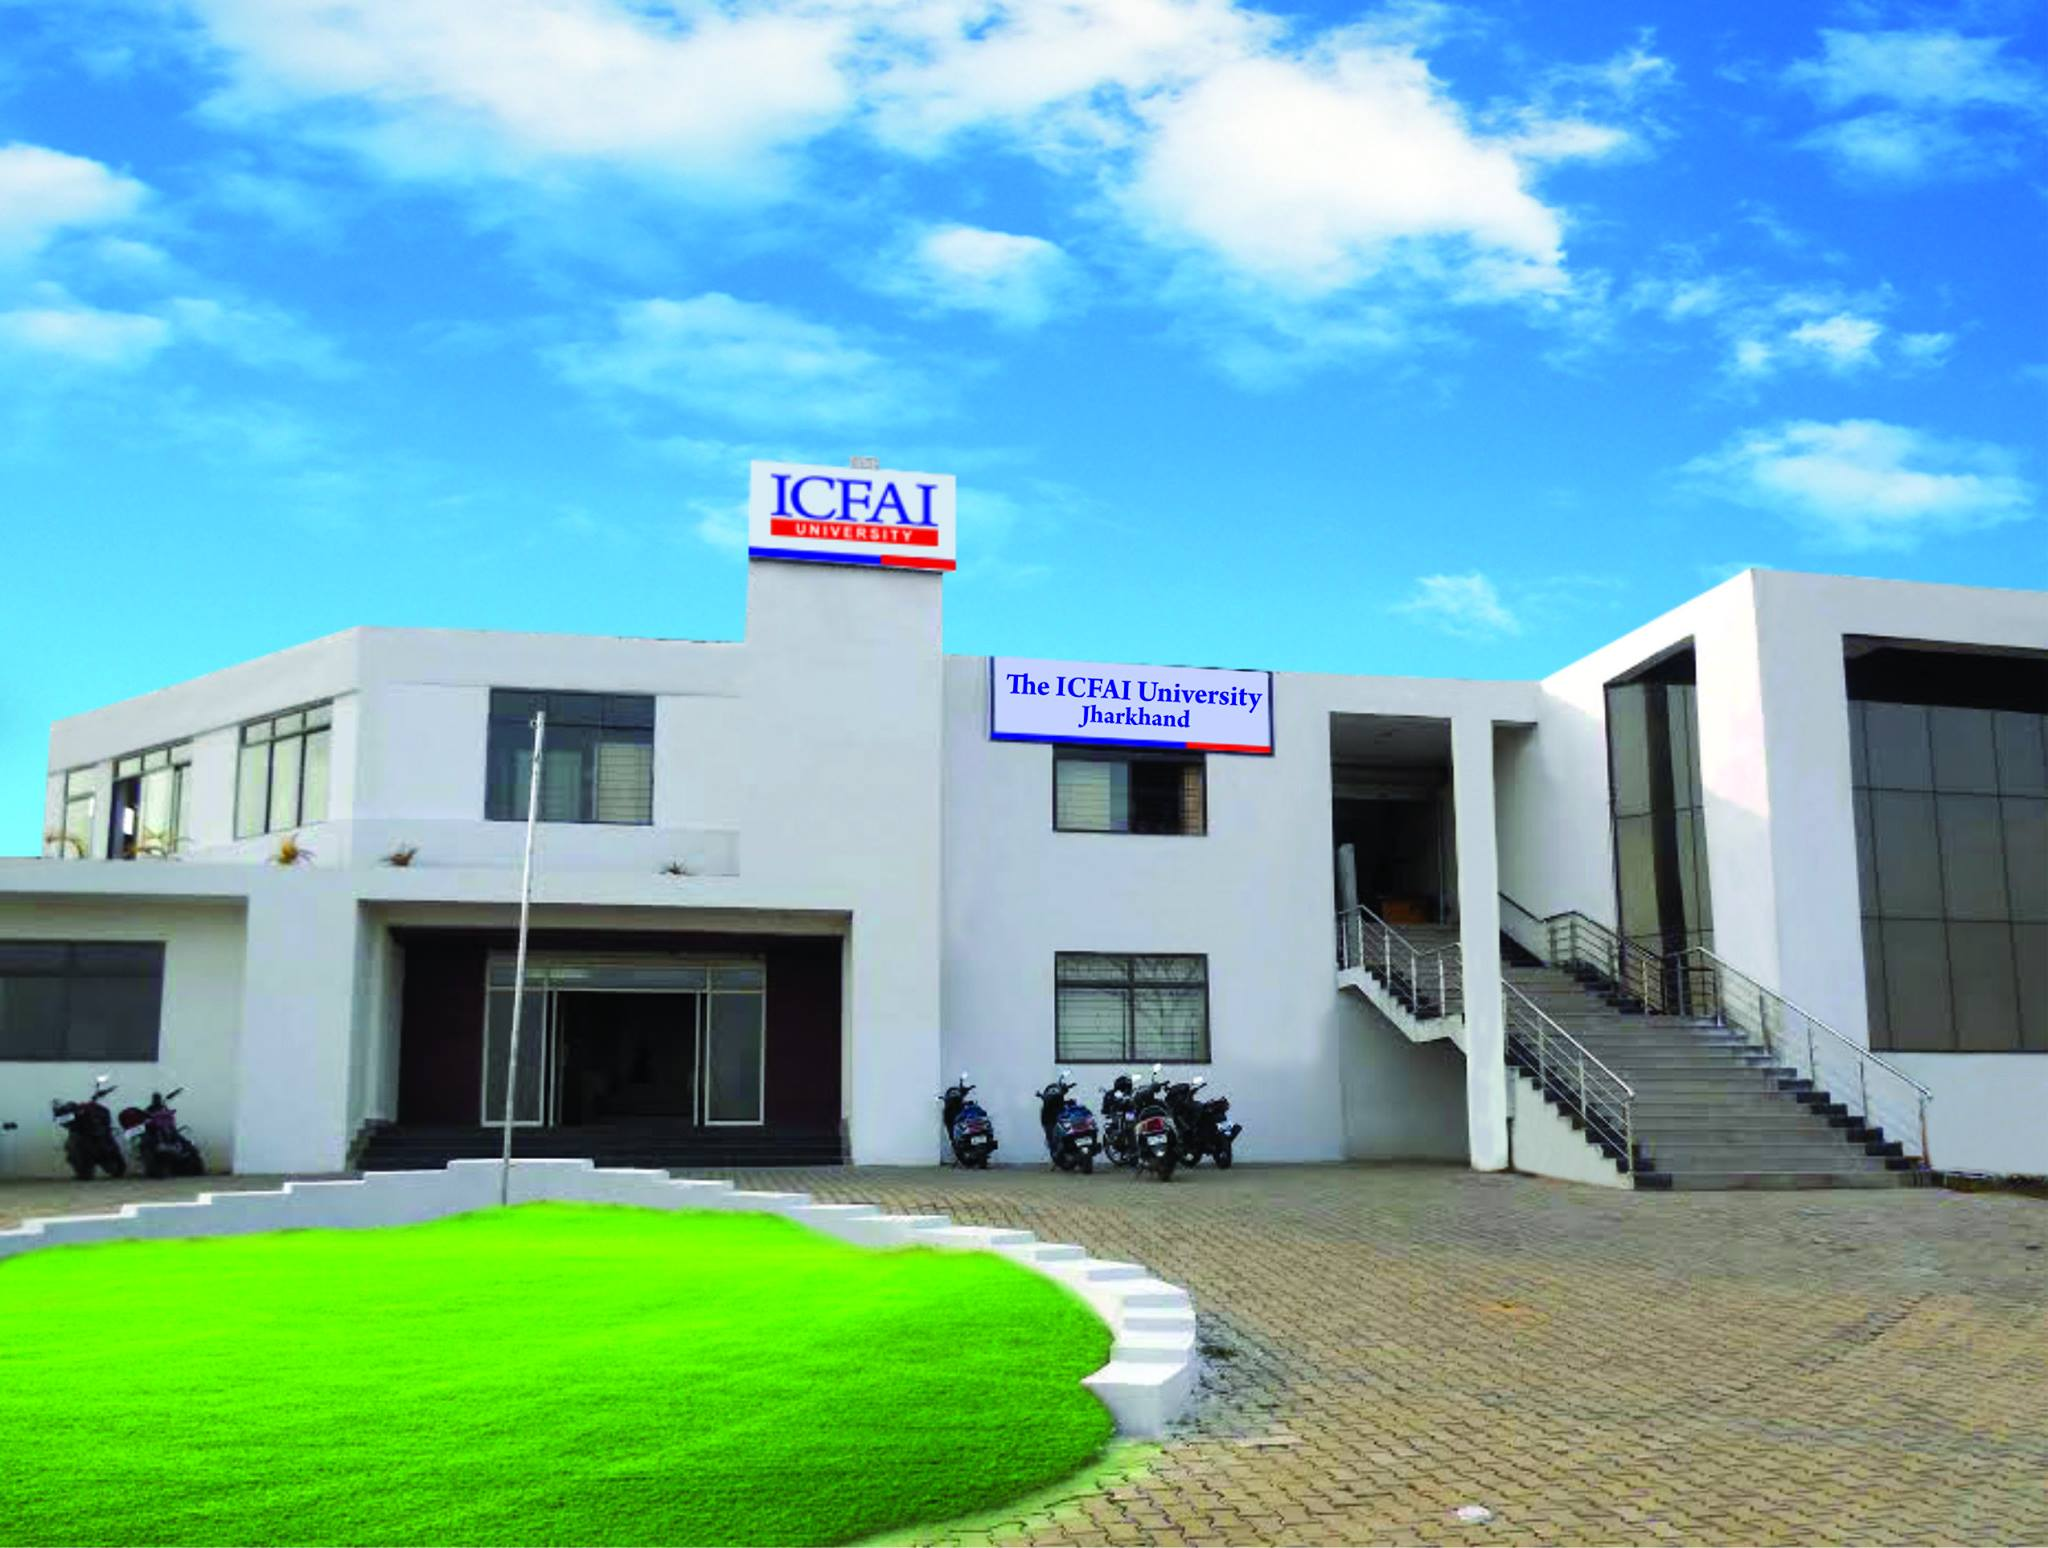 ICFAI (Institute of Chartered Financial Analysts of India), Ranchi